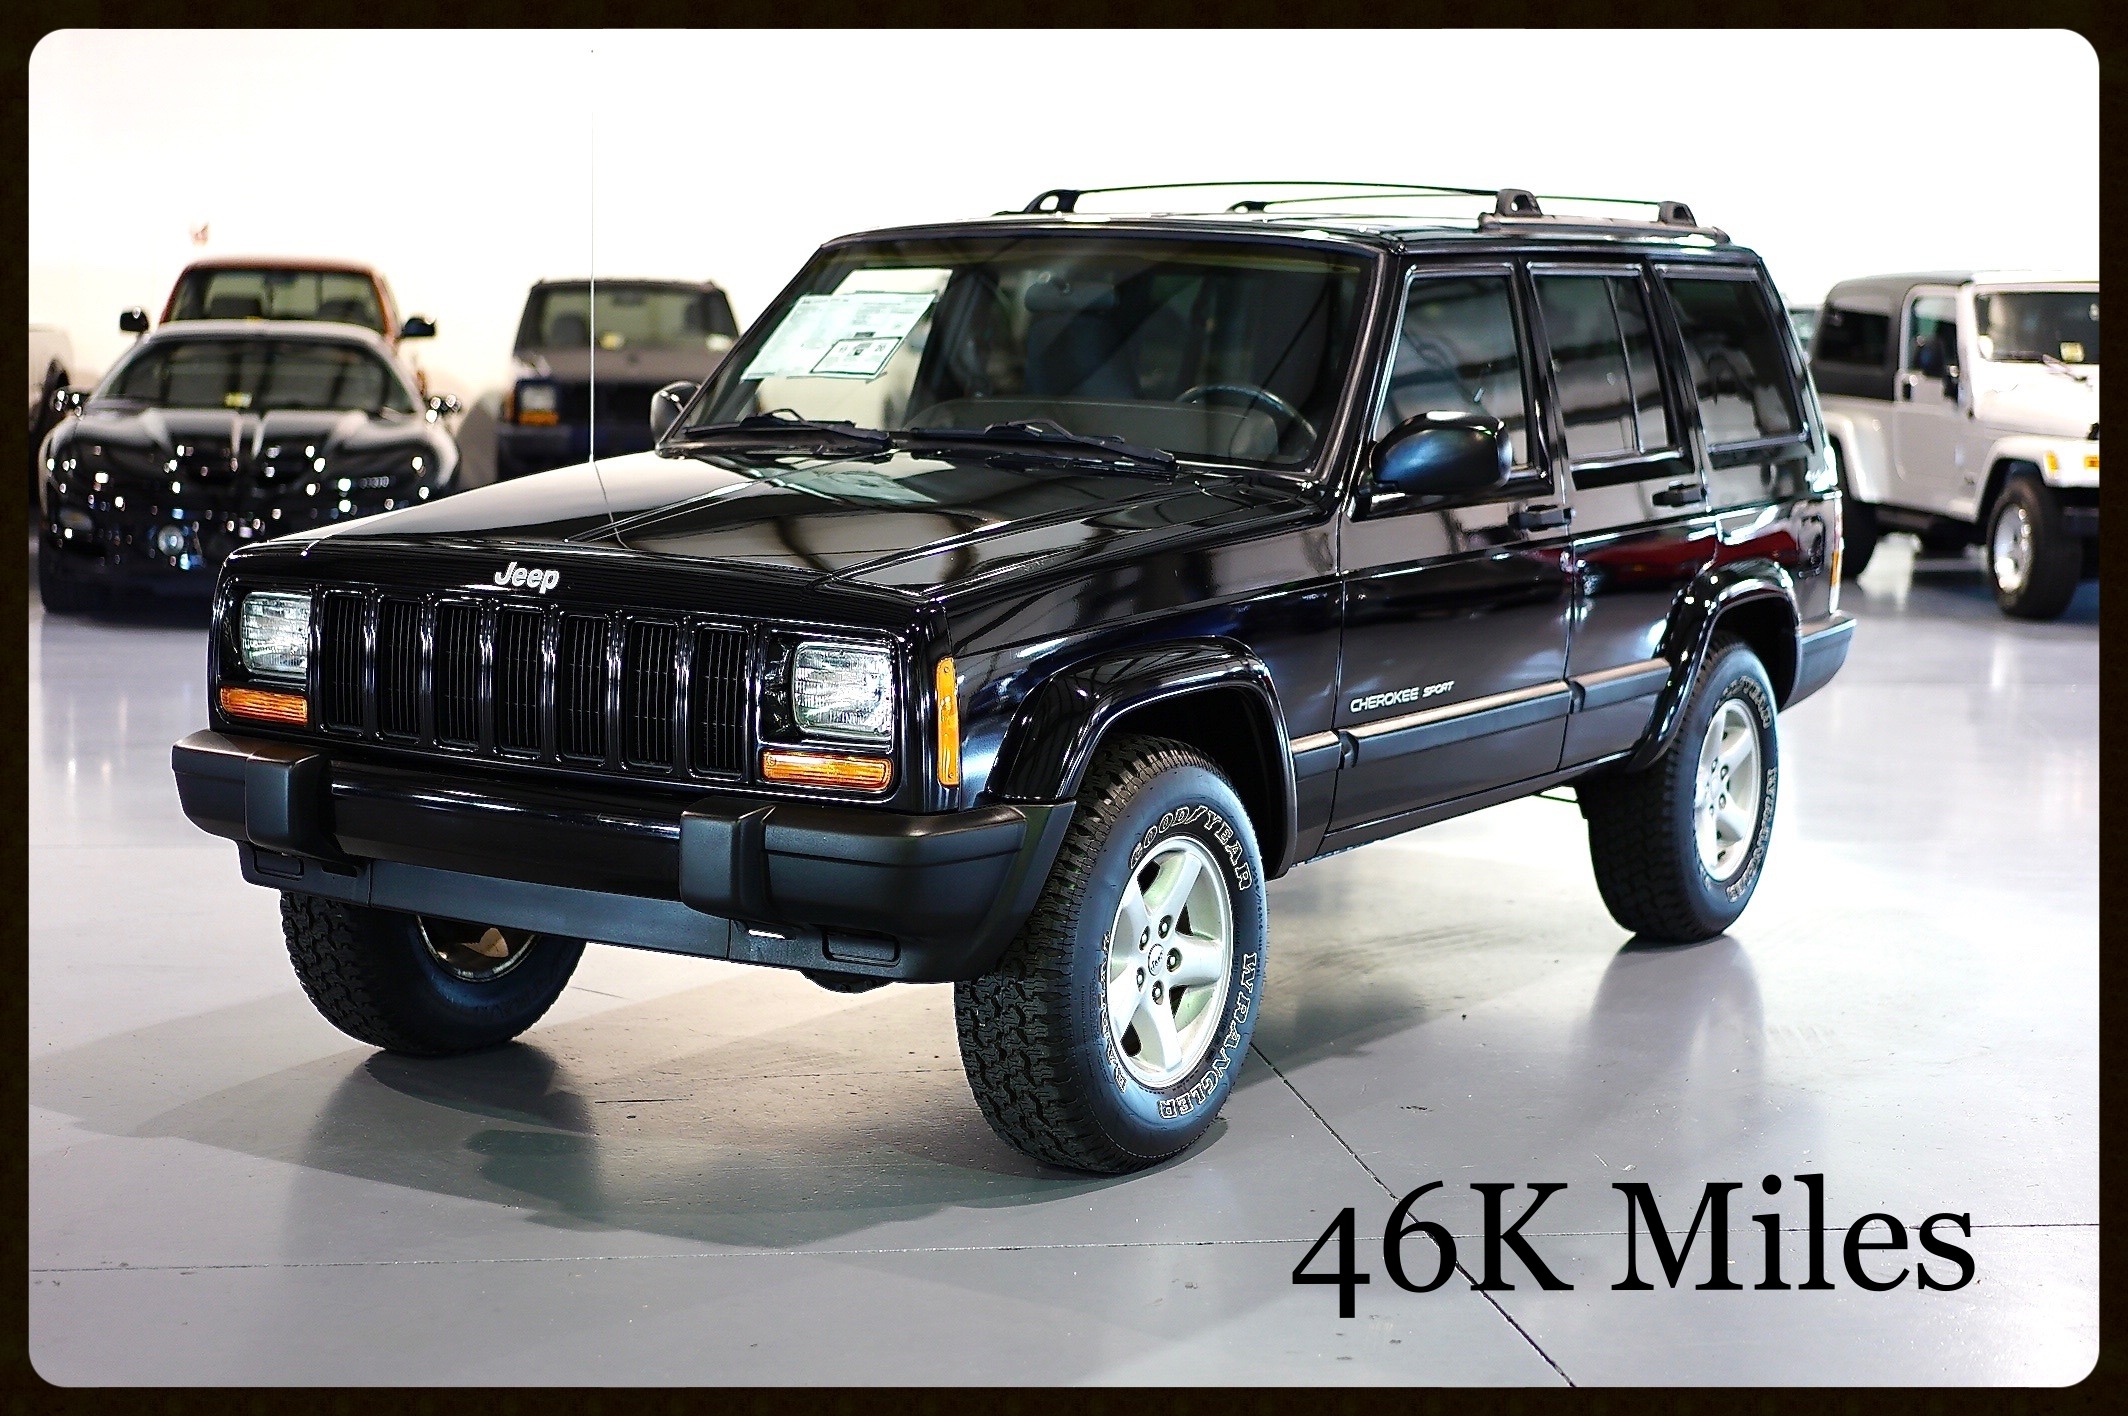 2001 Jeep Cherokee Sport....1 OWNER with only 46K Miles...This Jeep is Very Clean and Drives 100%. Click Here to View 4K Video and 100+ Photos